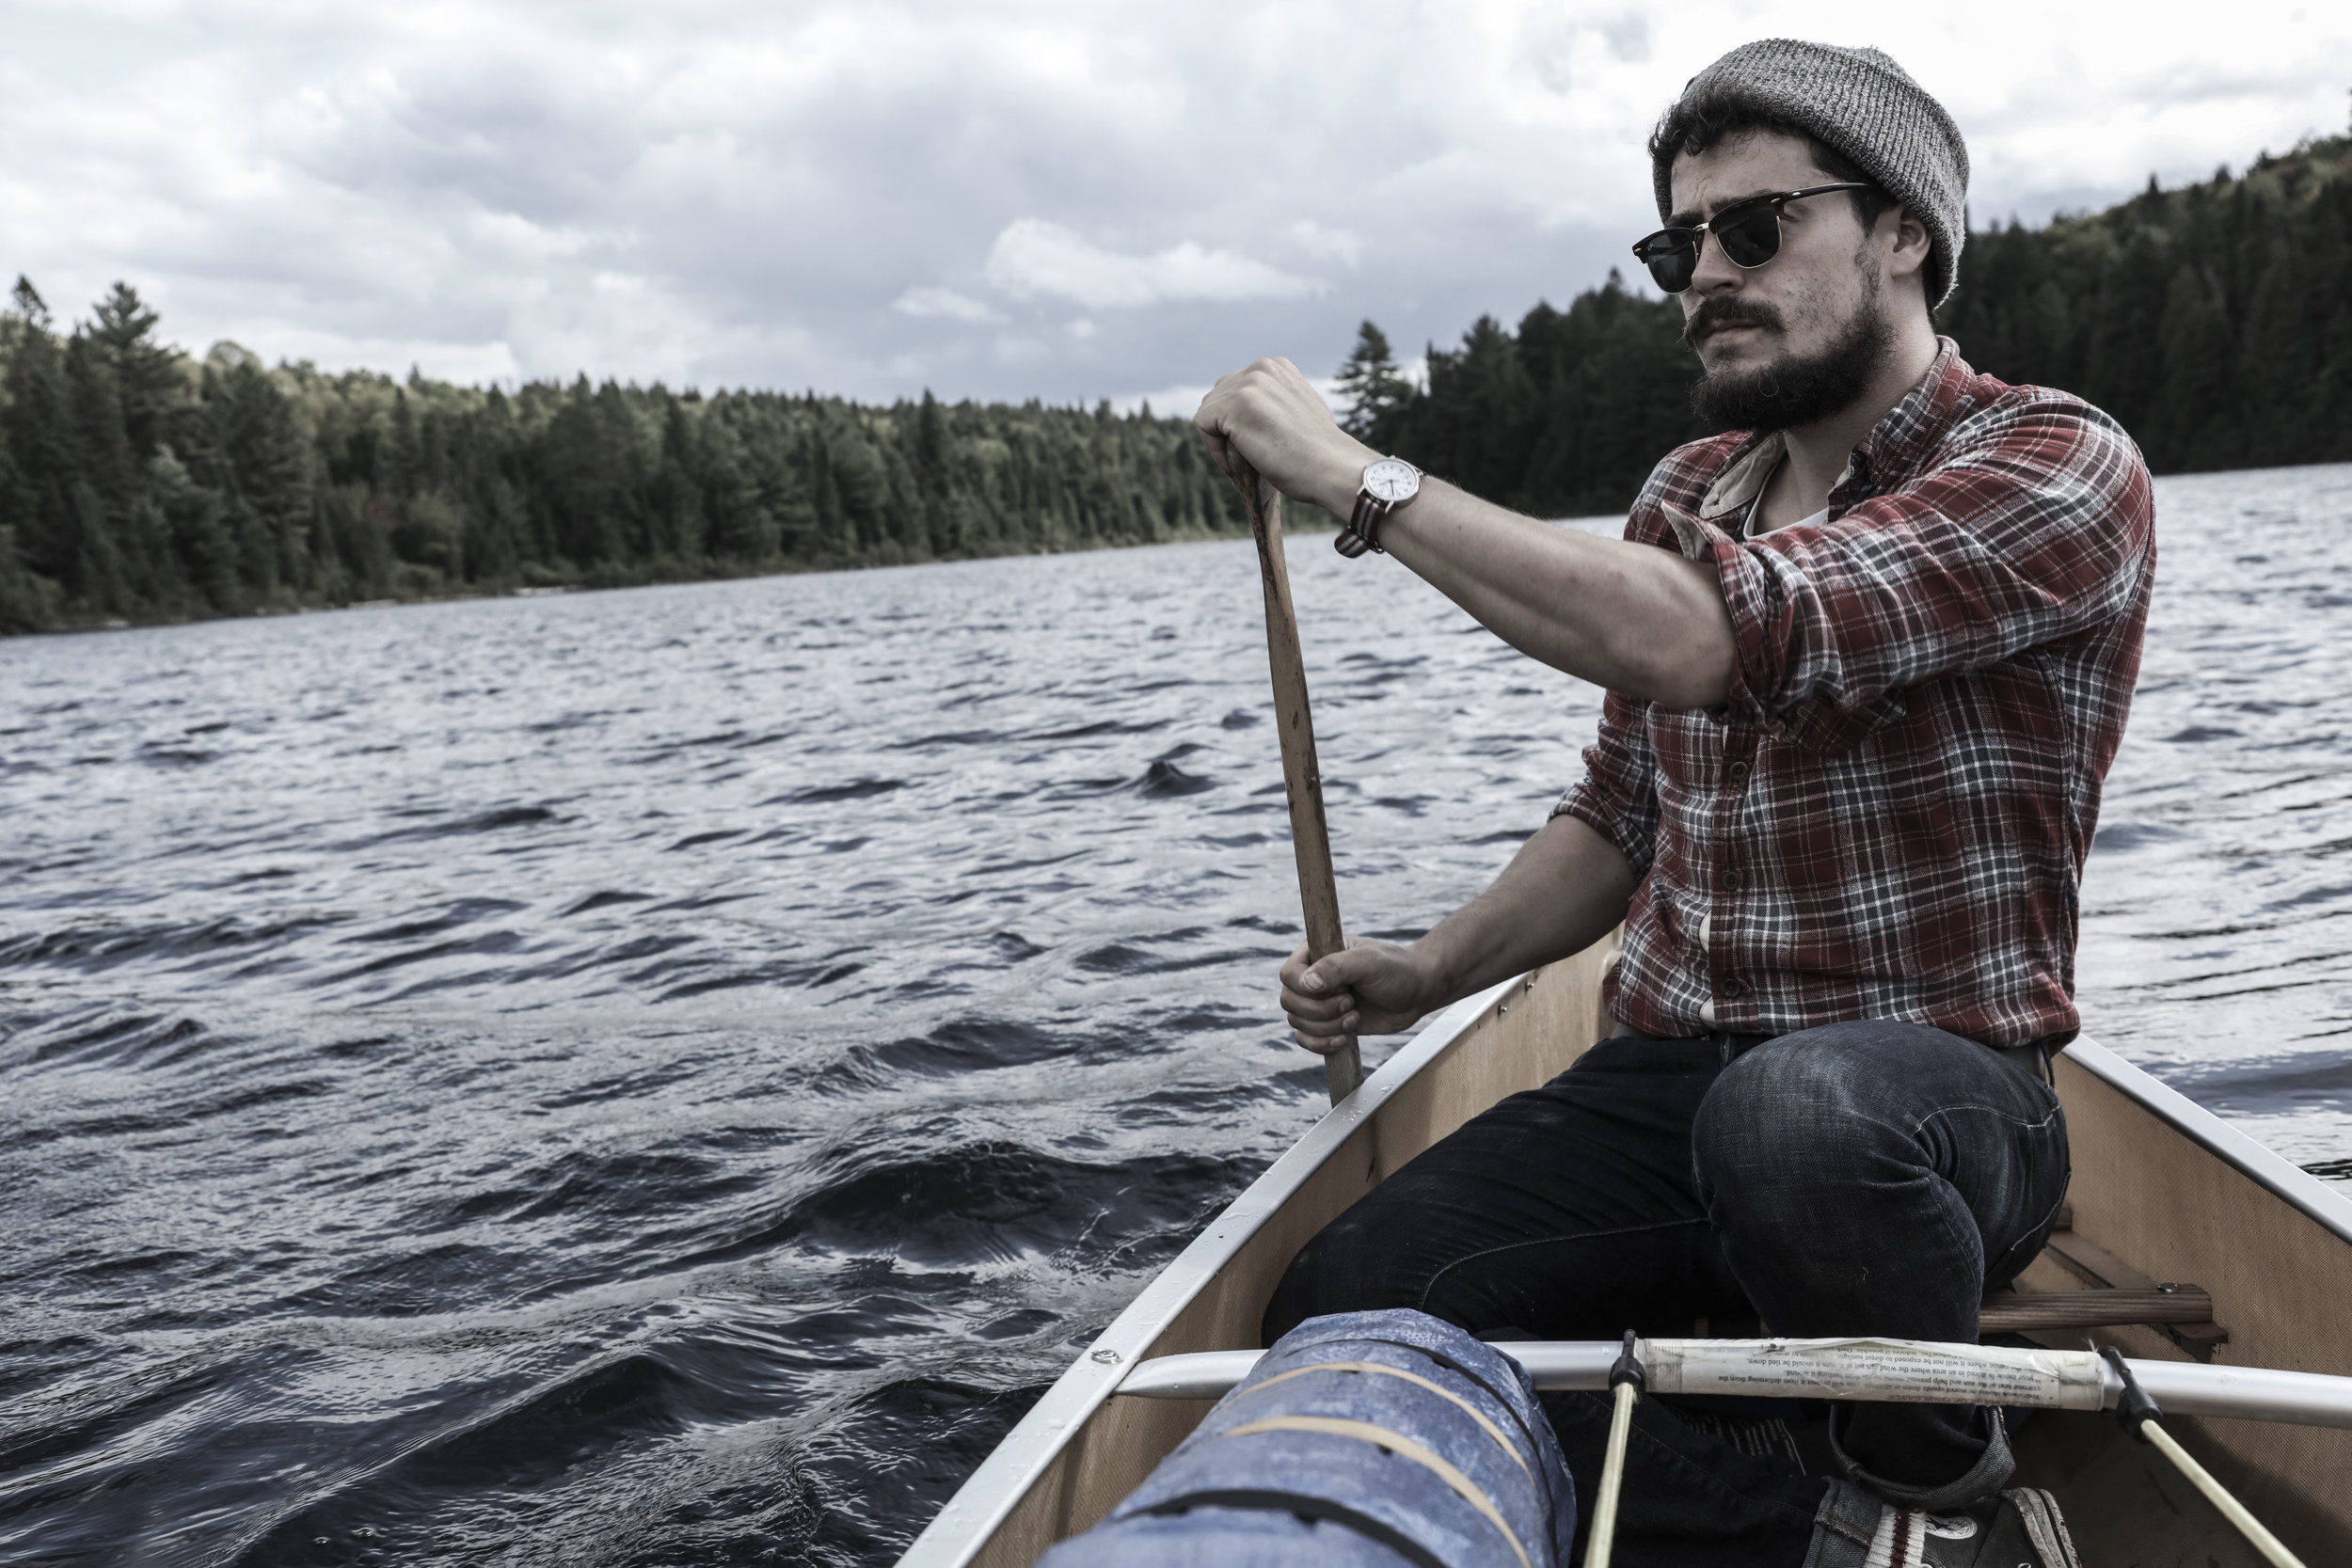 Cal Irvine paddle steers a canoe in White Birch Lake in Algonquin Provincial Park, ON, September 2016. (Megan Perra)